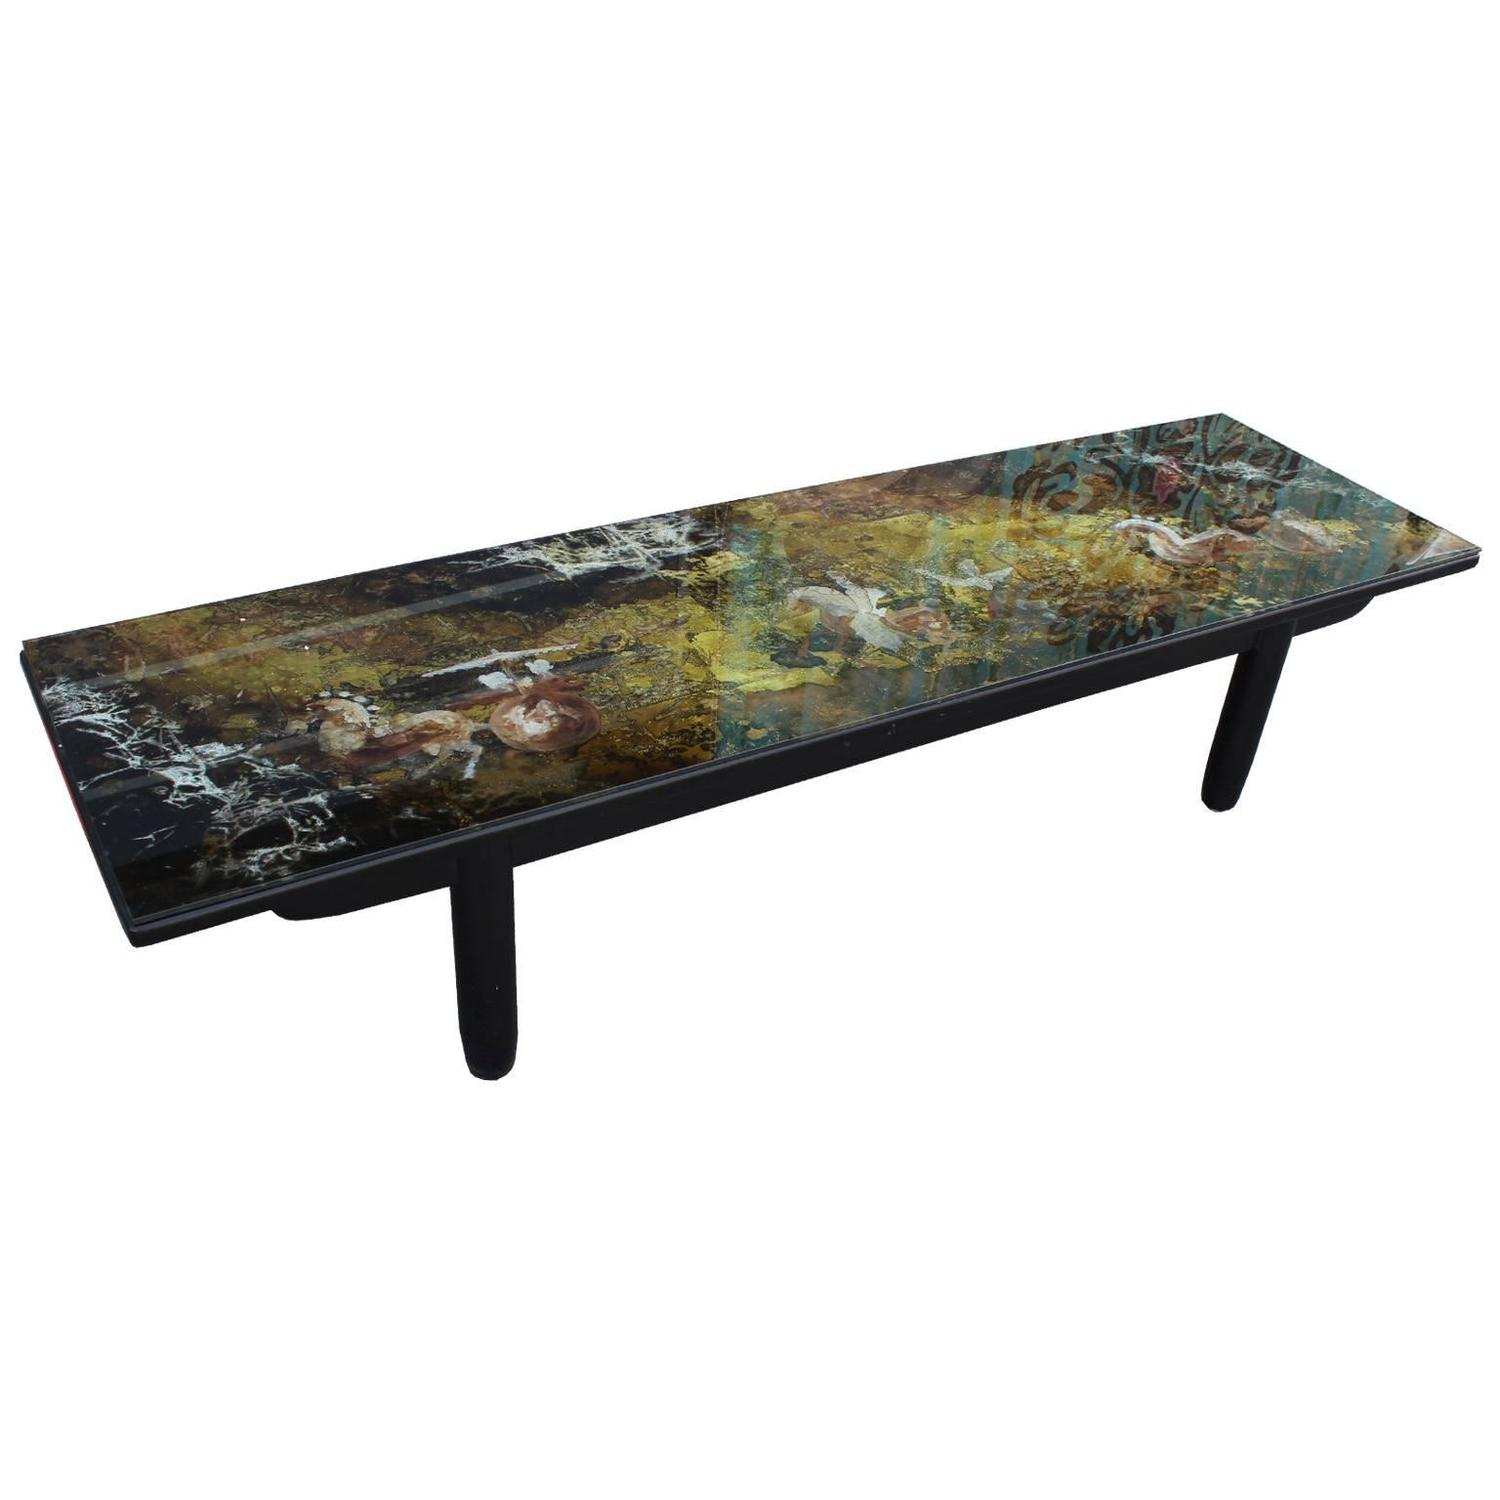 Stunning Reverse Painted Glass And Gold Leaf Coffee Table At 1stdibs